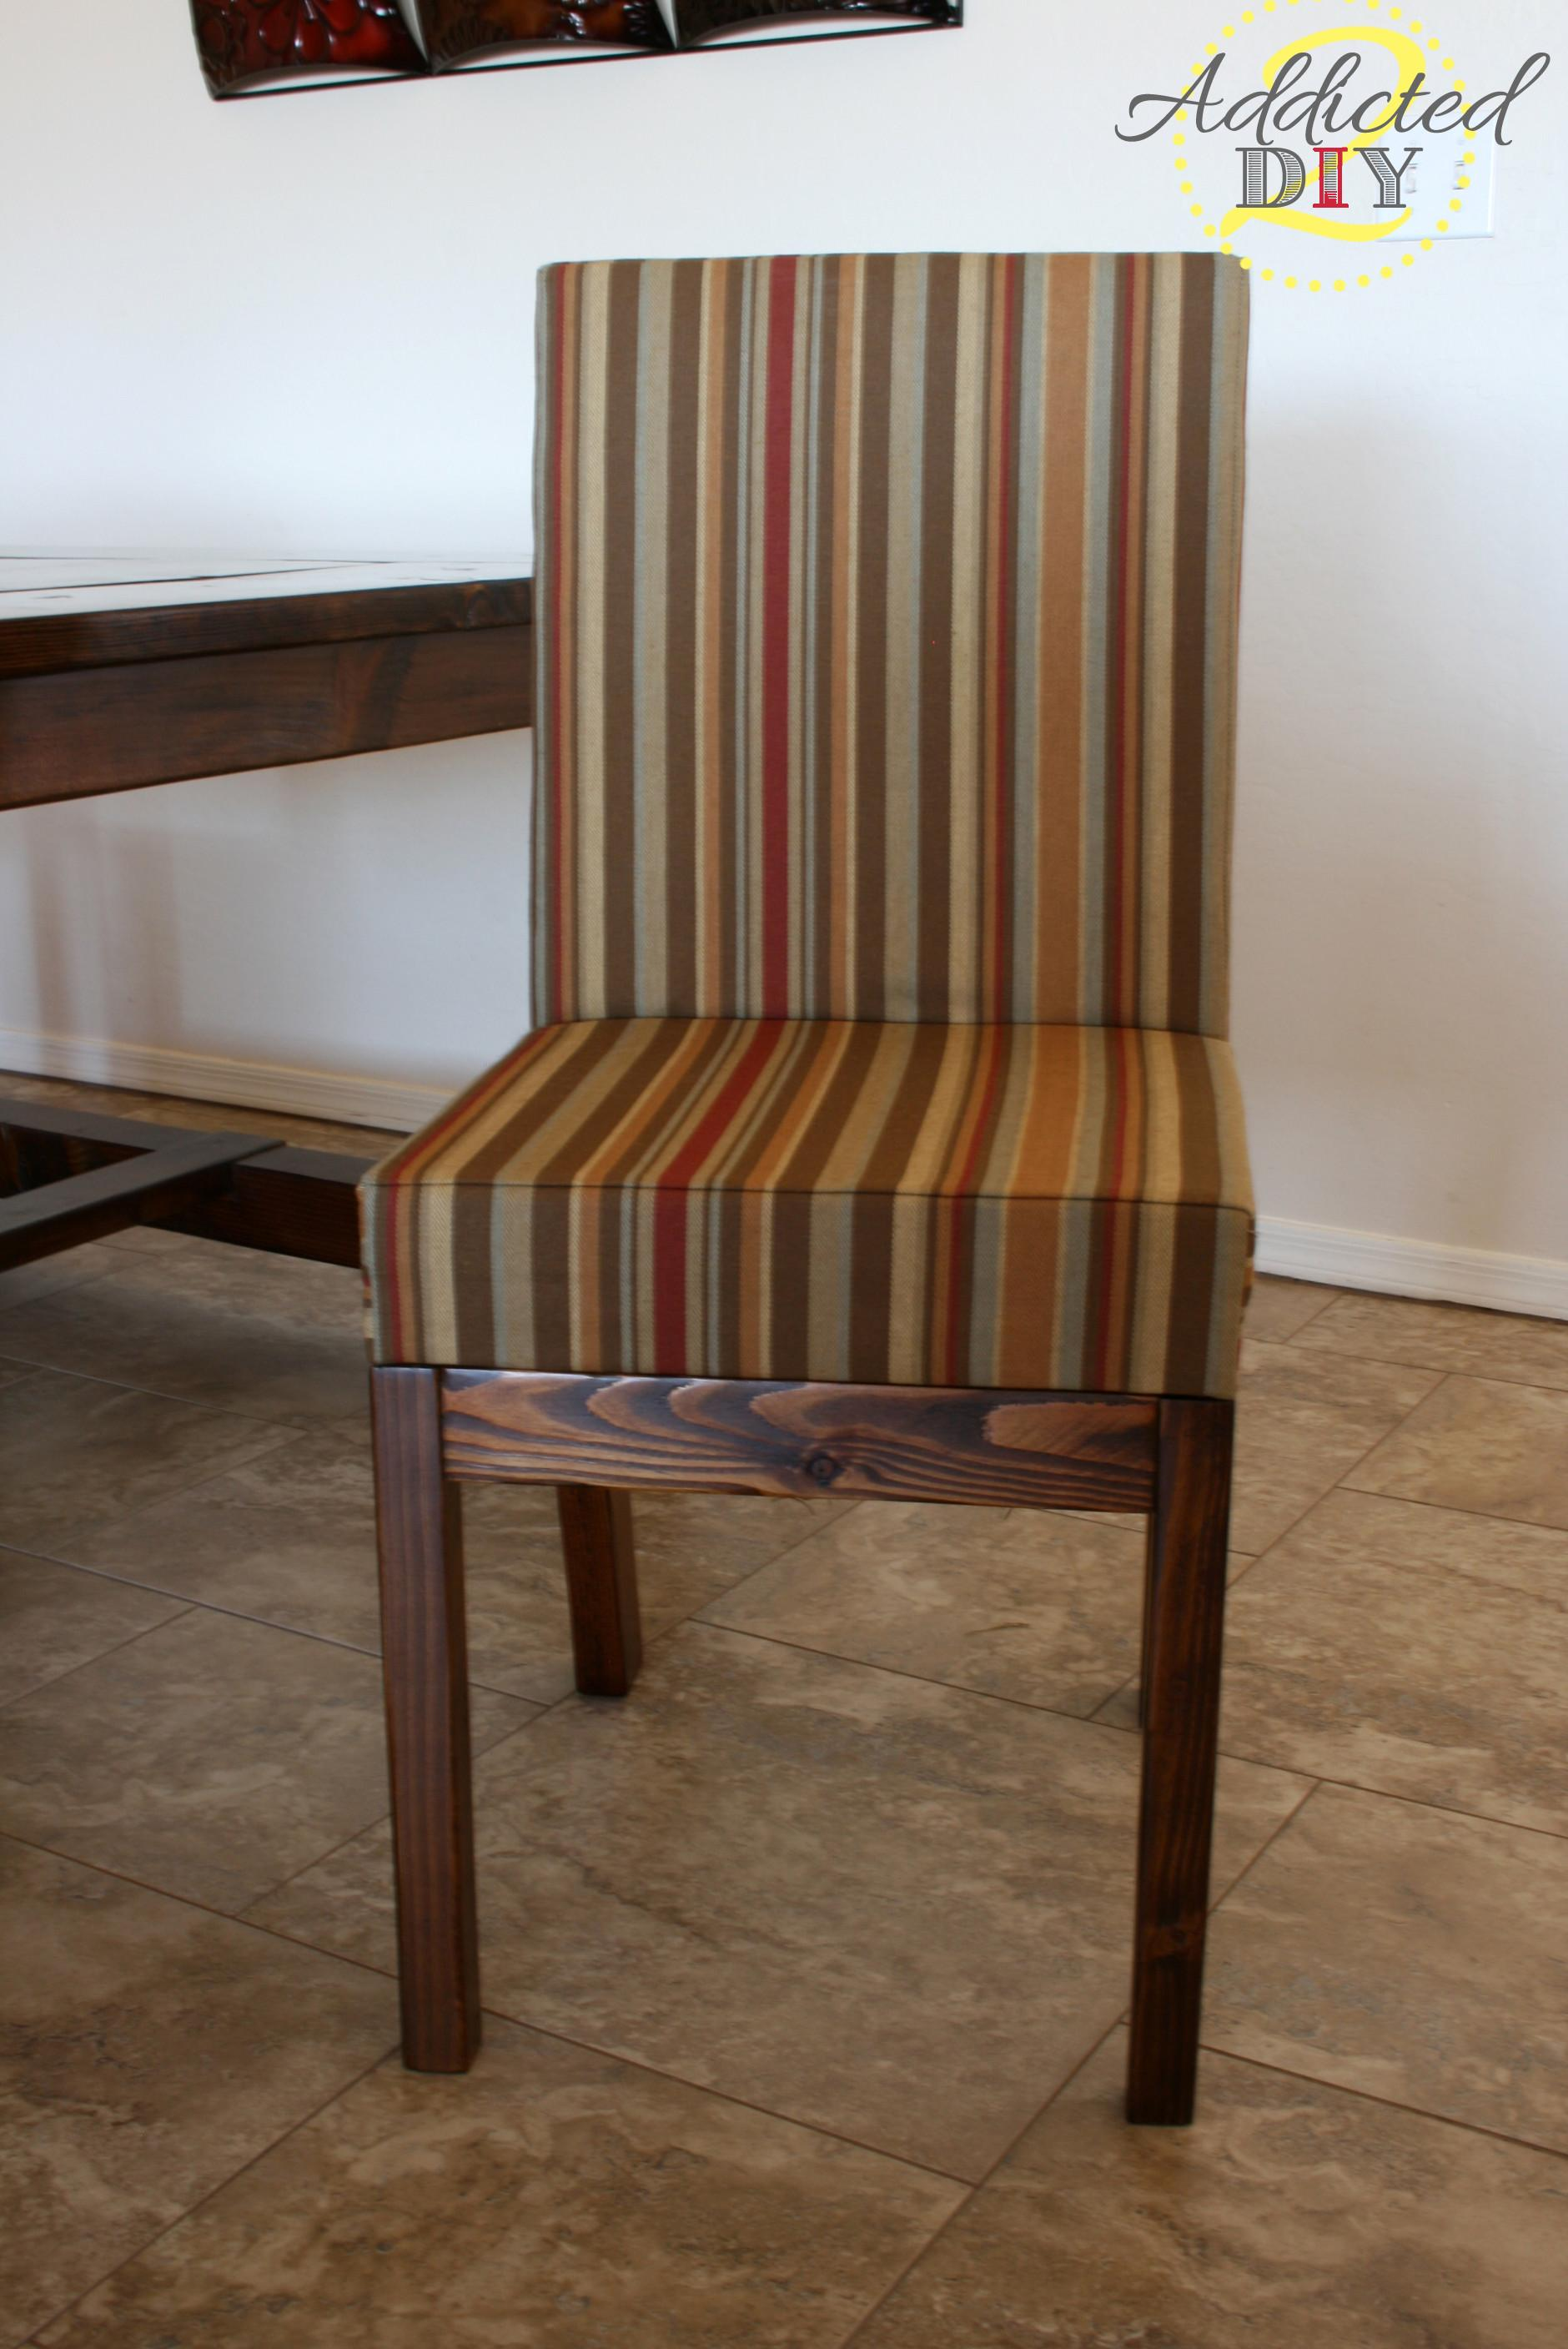 Ana White Diy Upholstered Dining Chairs Projects